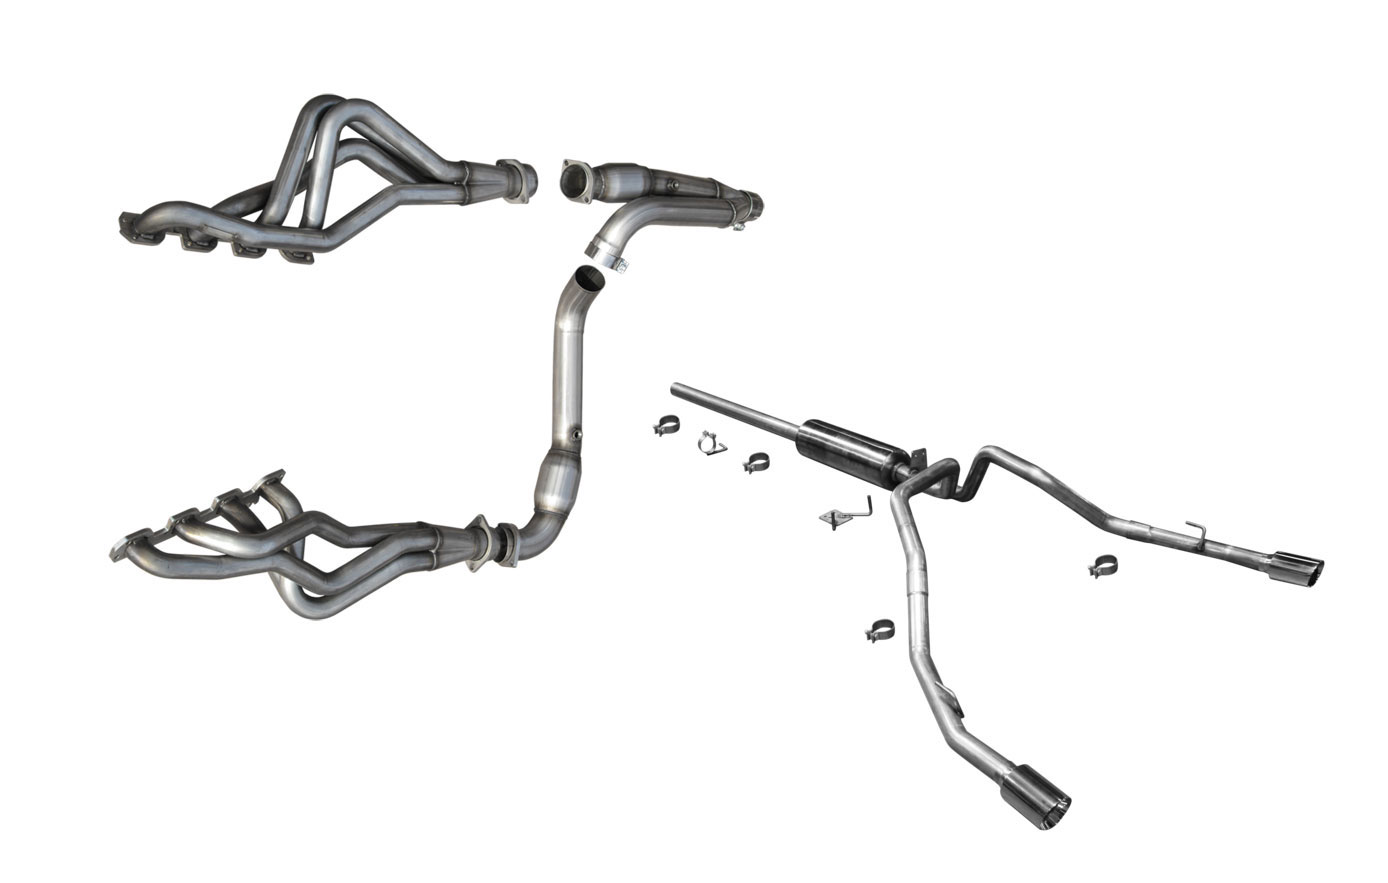 American Racing Headers RM158-13178300FSWC | Dodge Ram 1500 8-speed Full  System With Cats: 1-7/8 in x 3in Headers, 3in Y-Pipe and Exhaust System